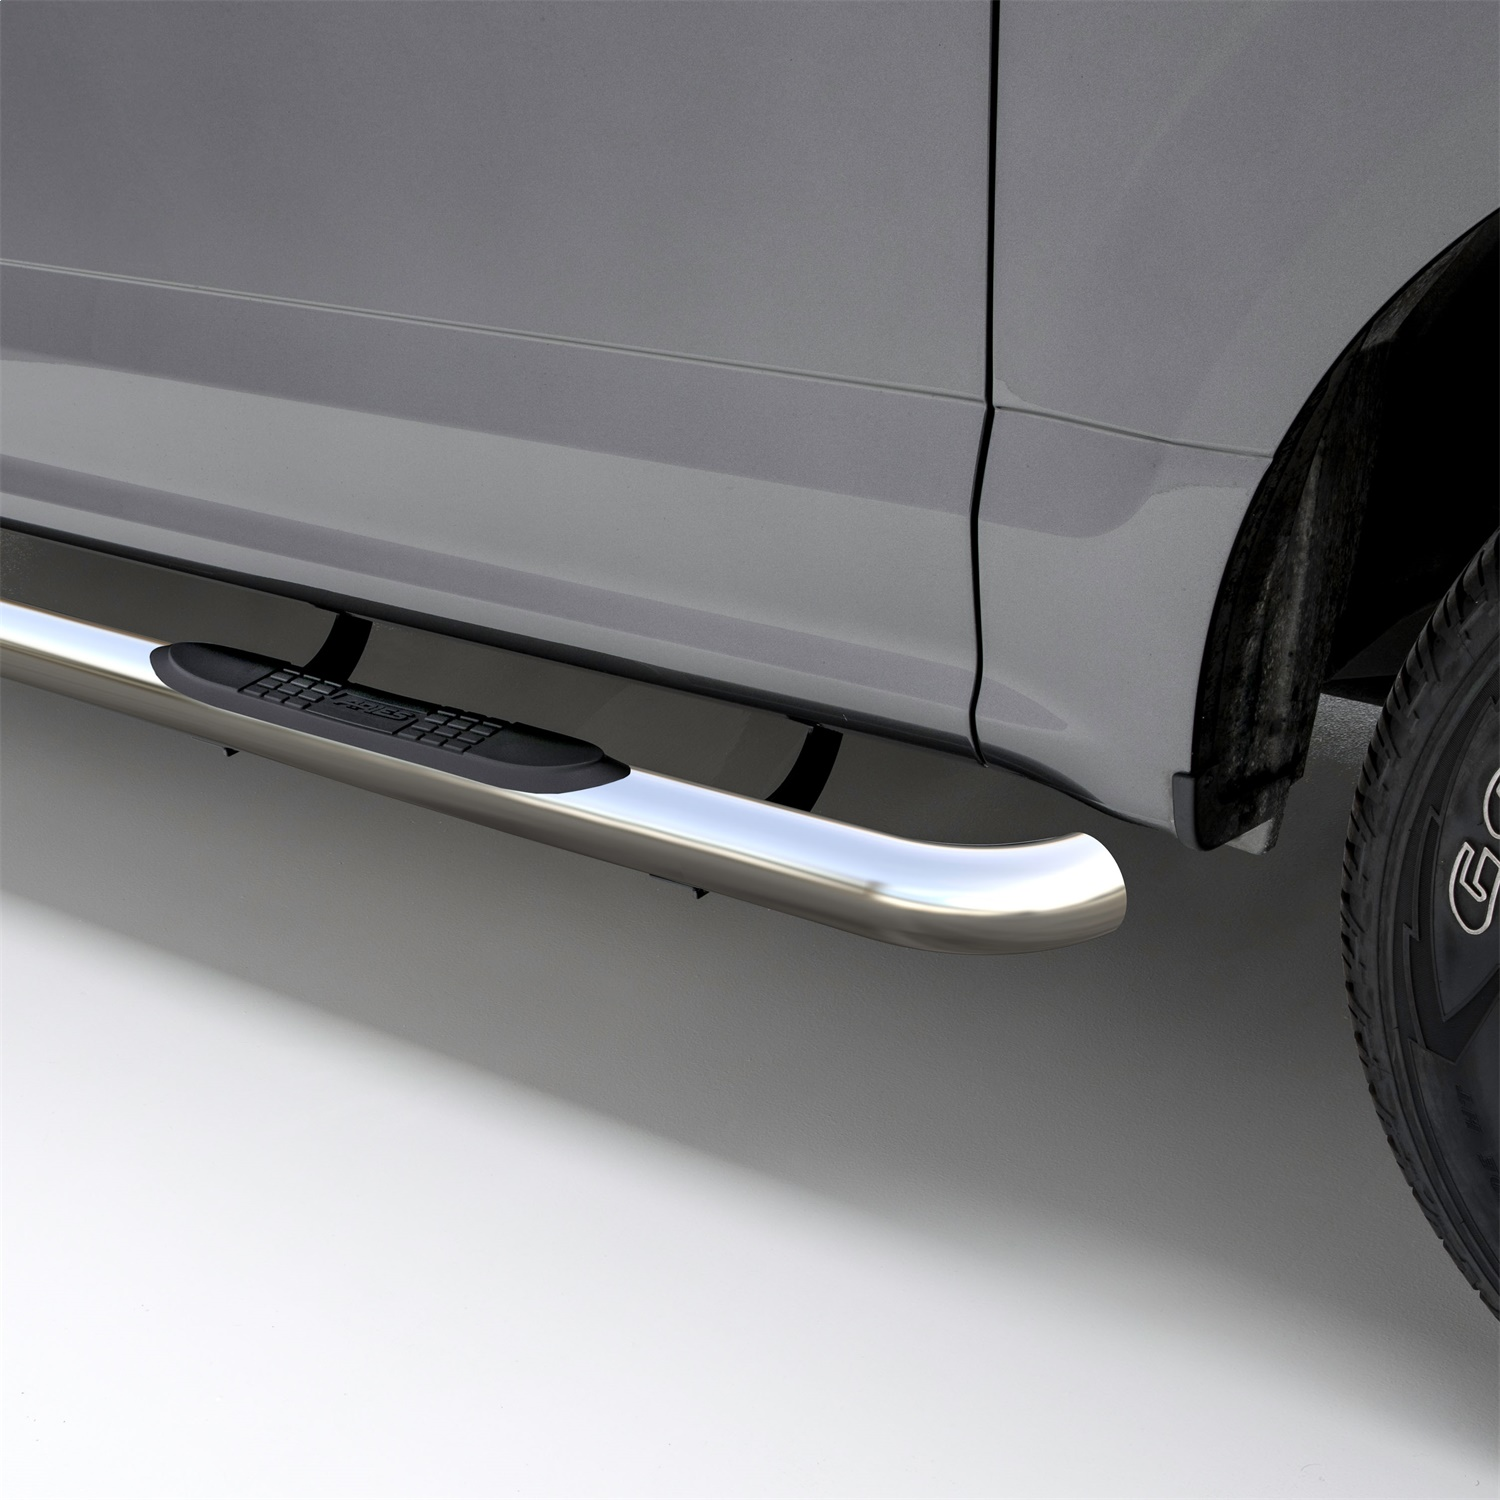 Aries 3 in. Round Side Bars, Incl. Side Bars And Mounting Hardware, Rocker Panel Mount, Polished Stainless Steel